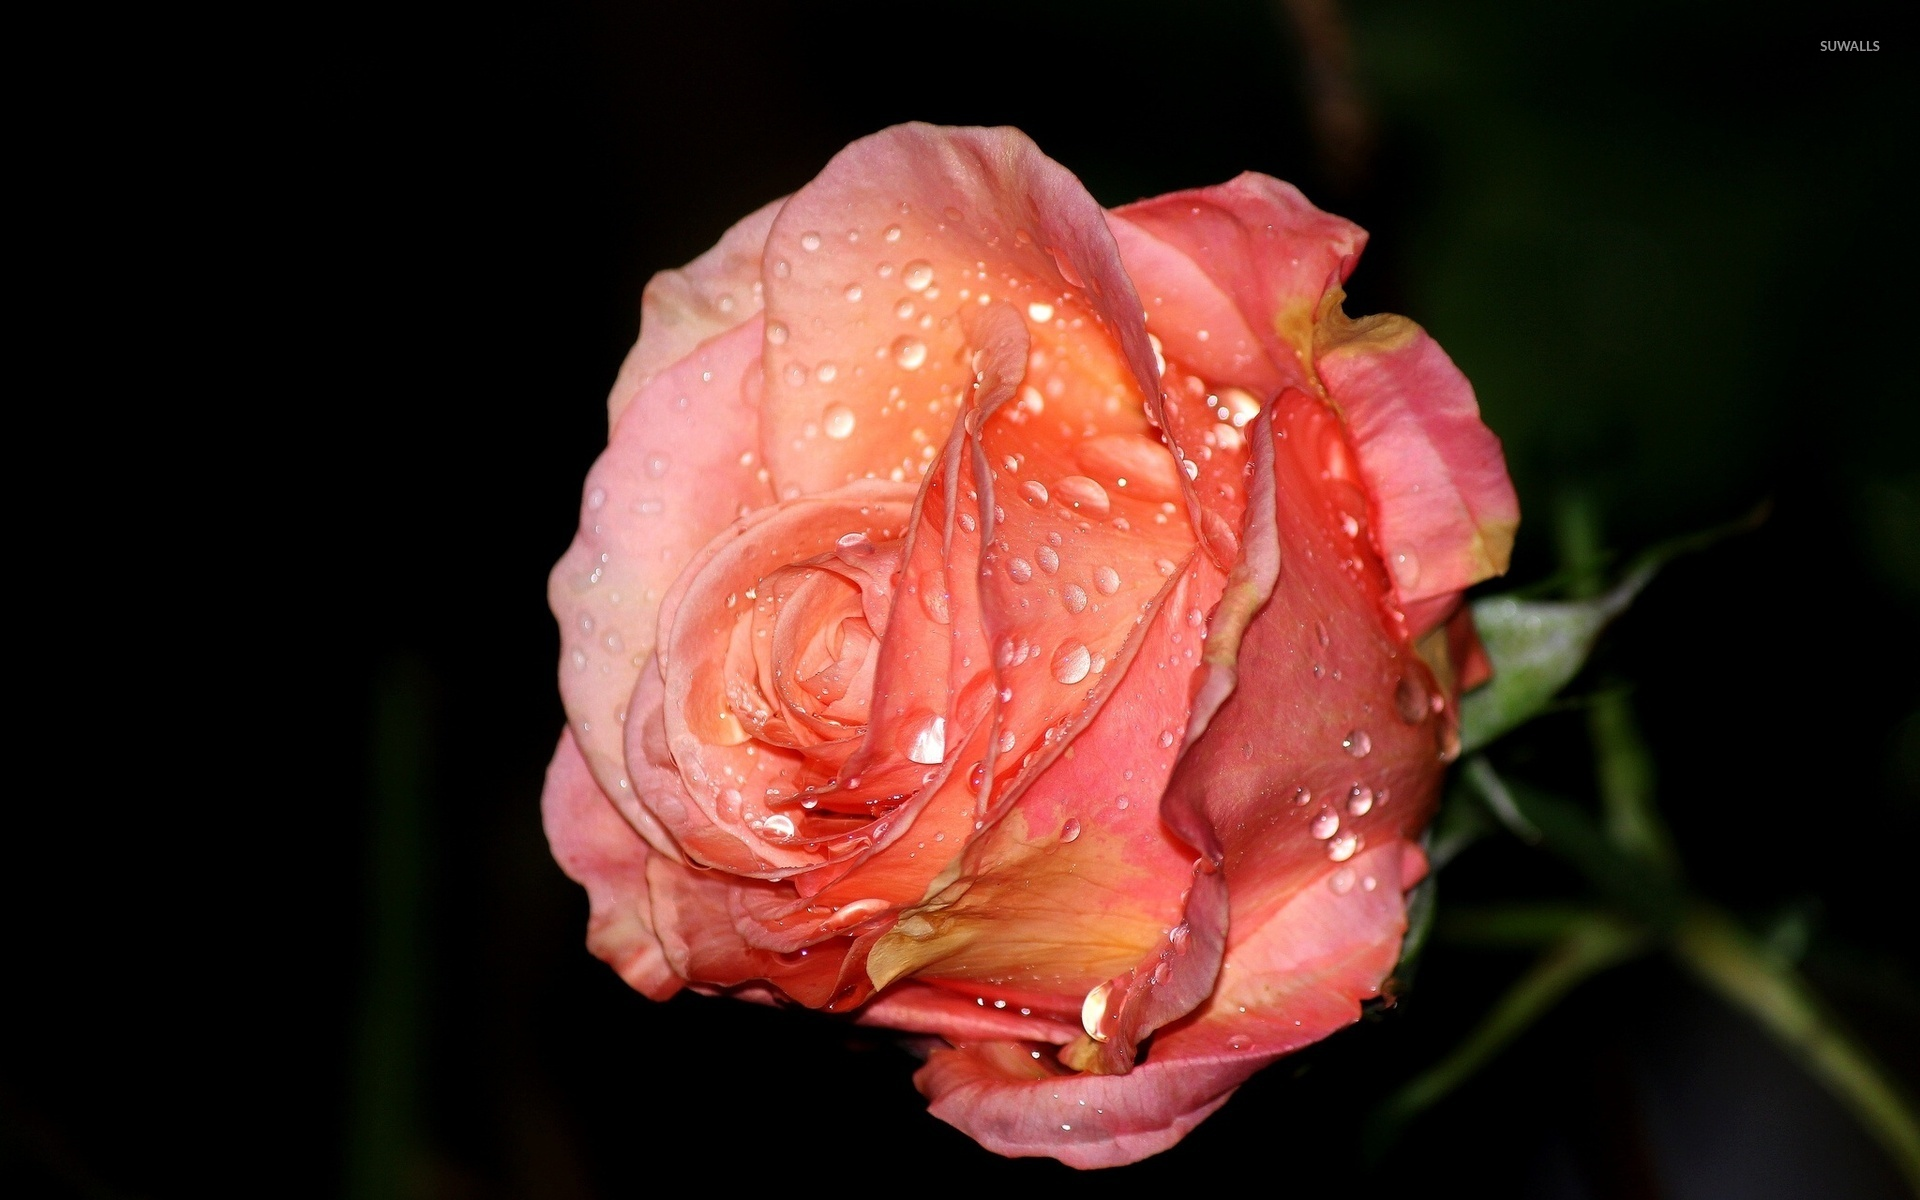 rose with water drops wallpaper - flower wallpapers - #41795